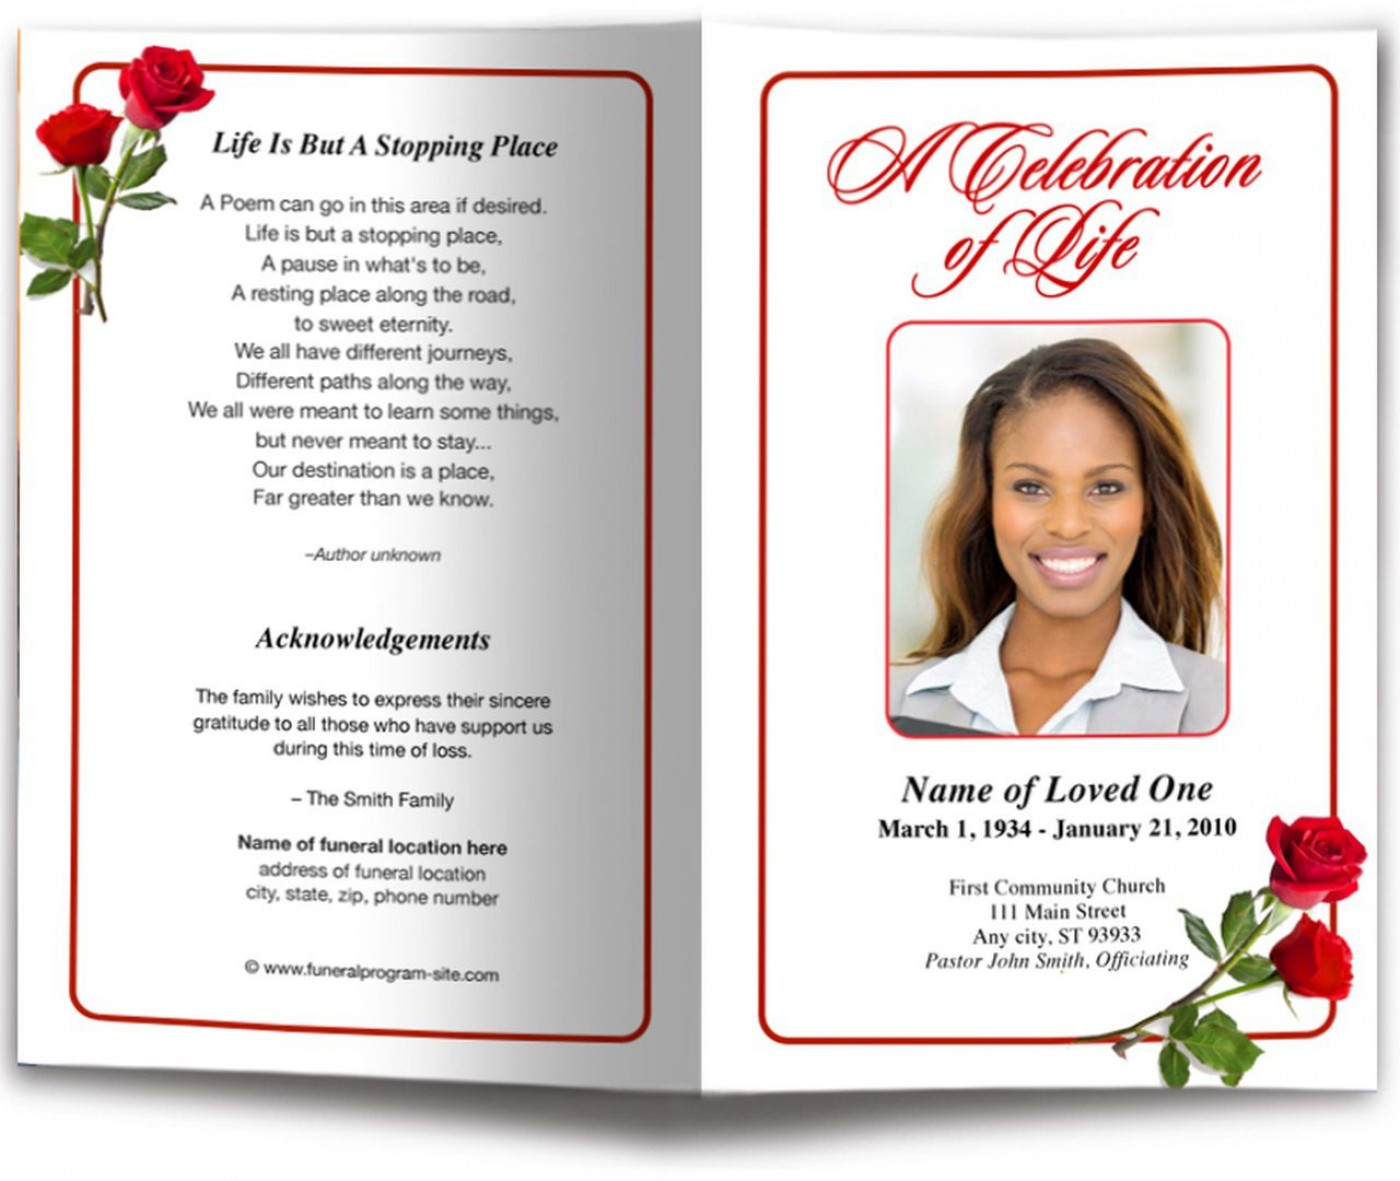 006 Incredible Funeral Program Template Free Inspiration  Blank Microsoft Word Layout Editable Uk1400